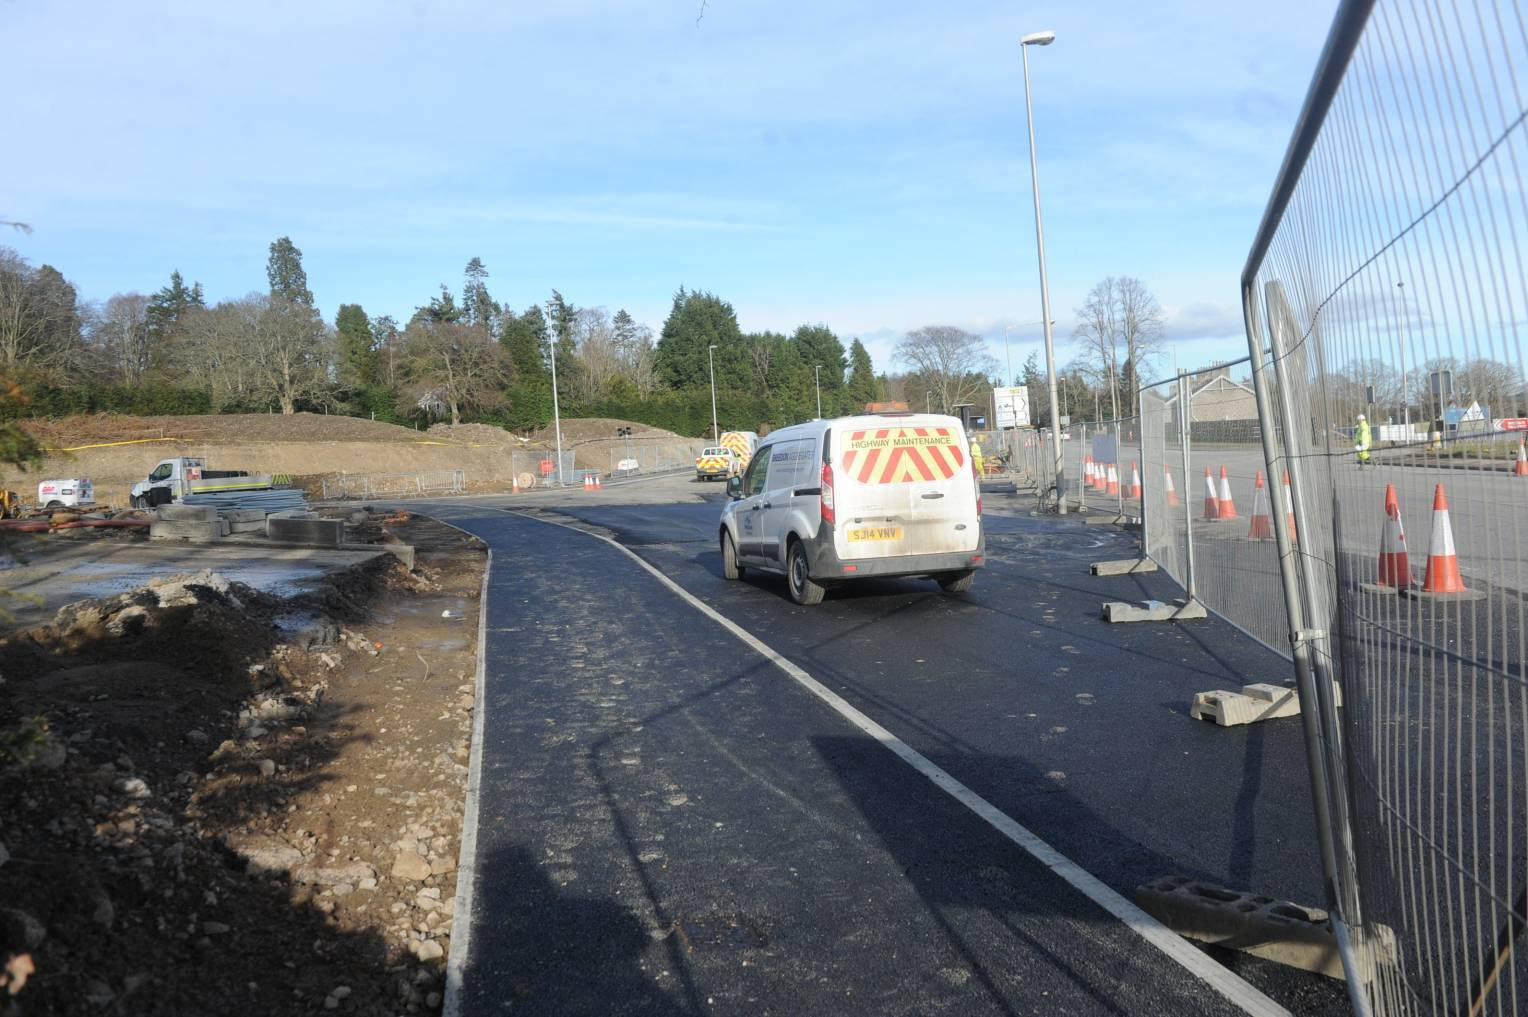 The temporary road will be in operation on the A93 between Milltimber and Peterculter